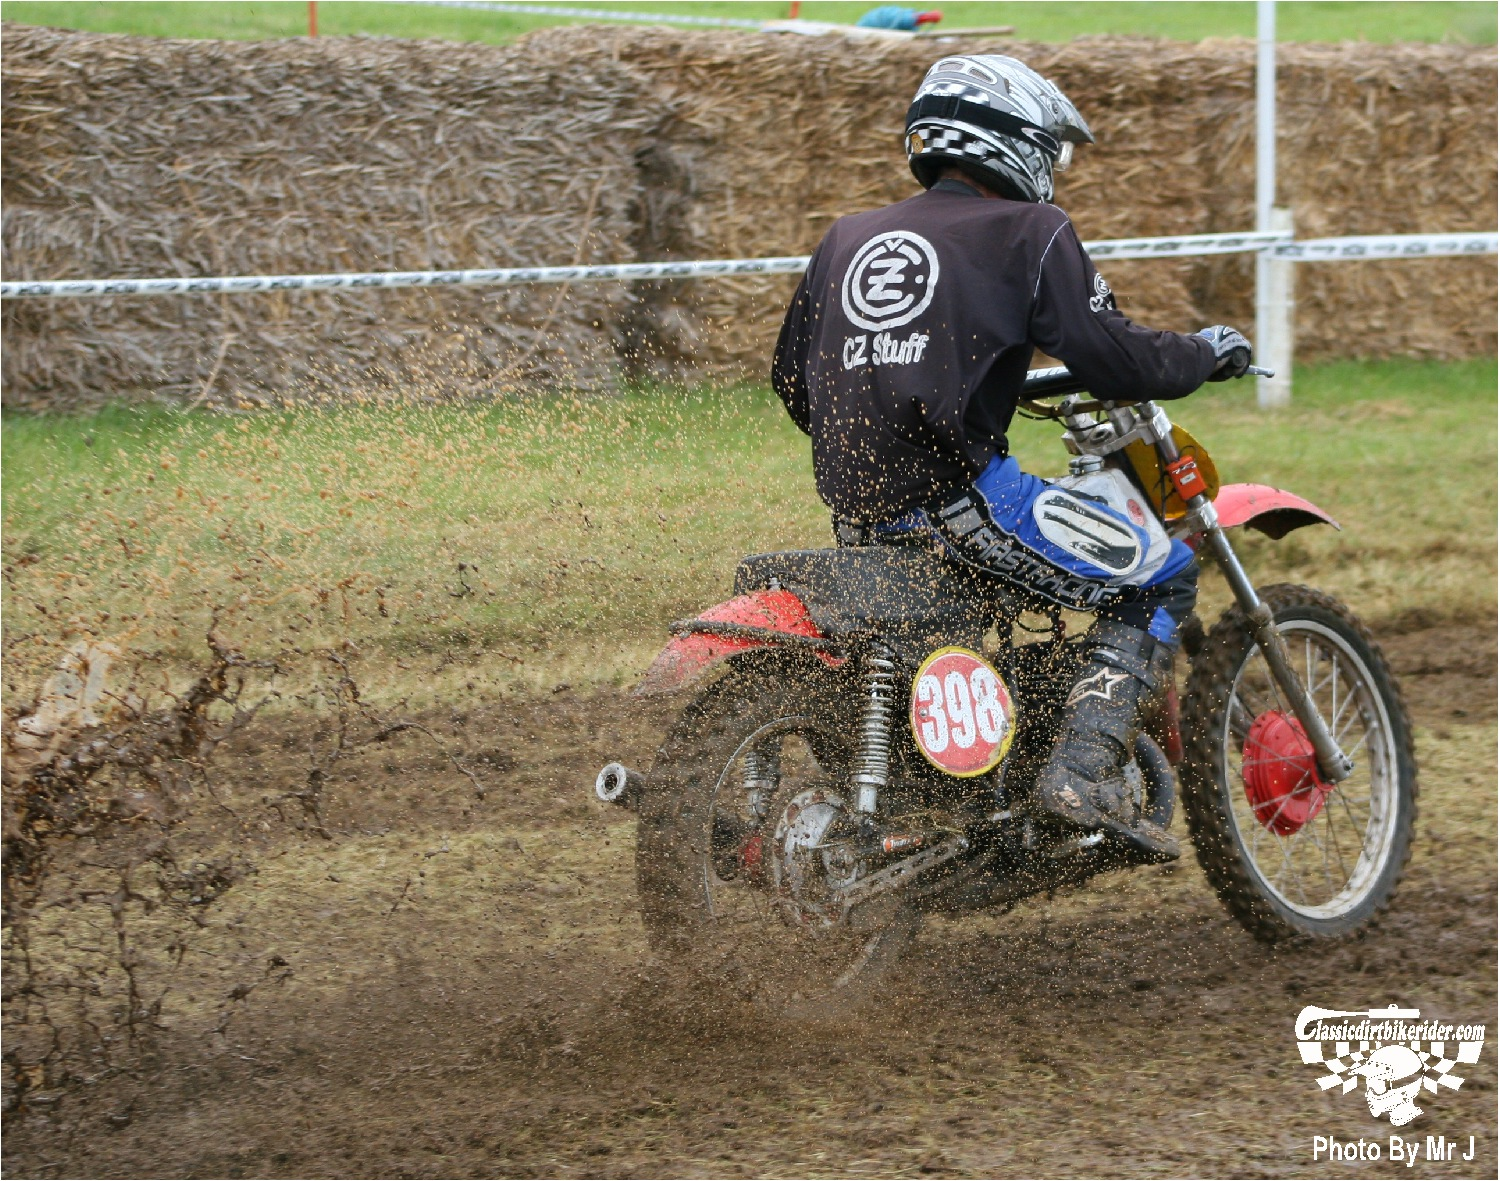 king of the castle 2015 photos Farleigh Castle twinshock motocross classicdirtbikerider.com 130